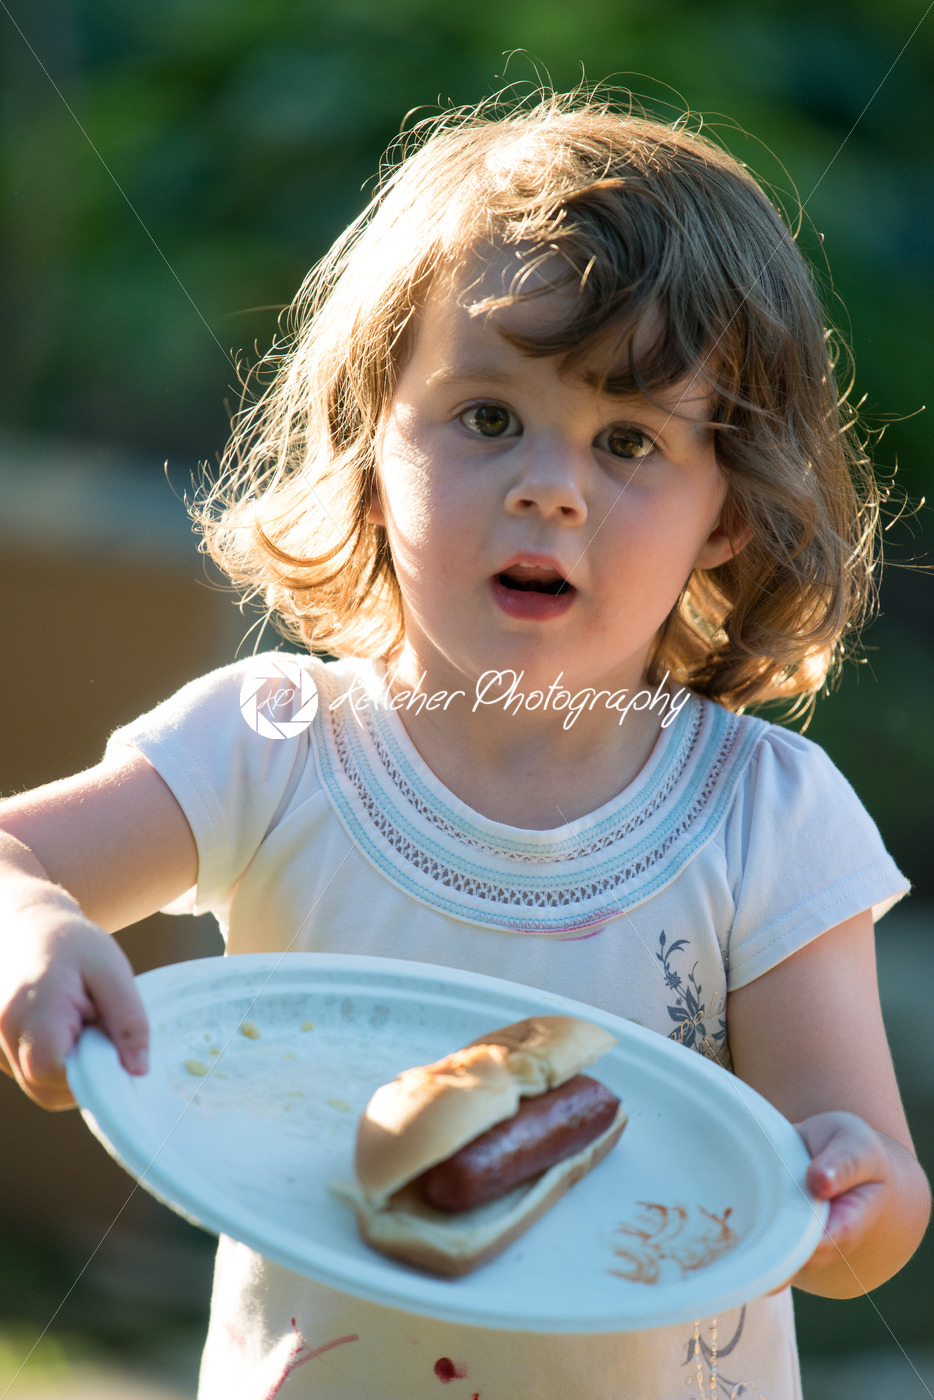 Cute toddler girl eating hot dog hotdog - Kelleher Photography Store